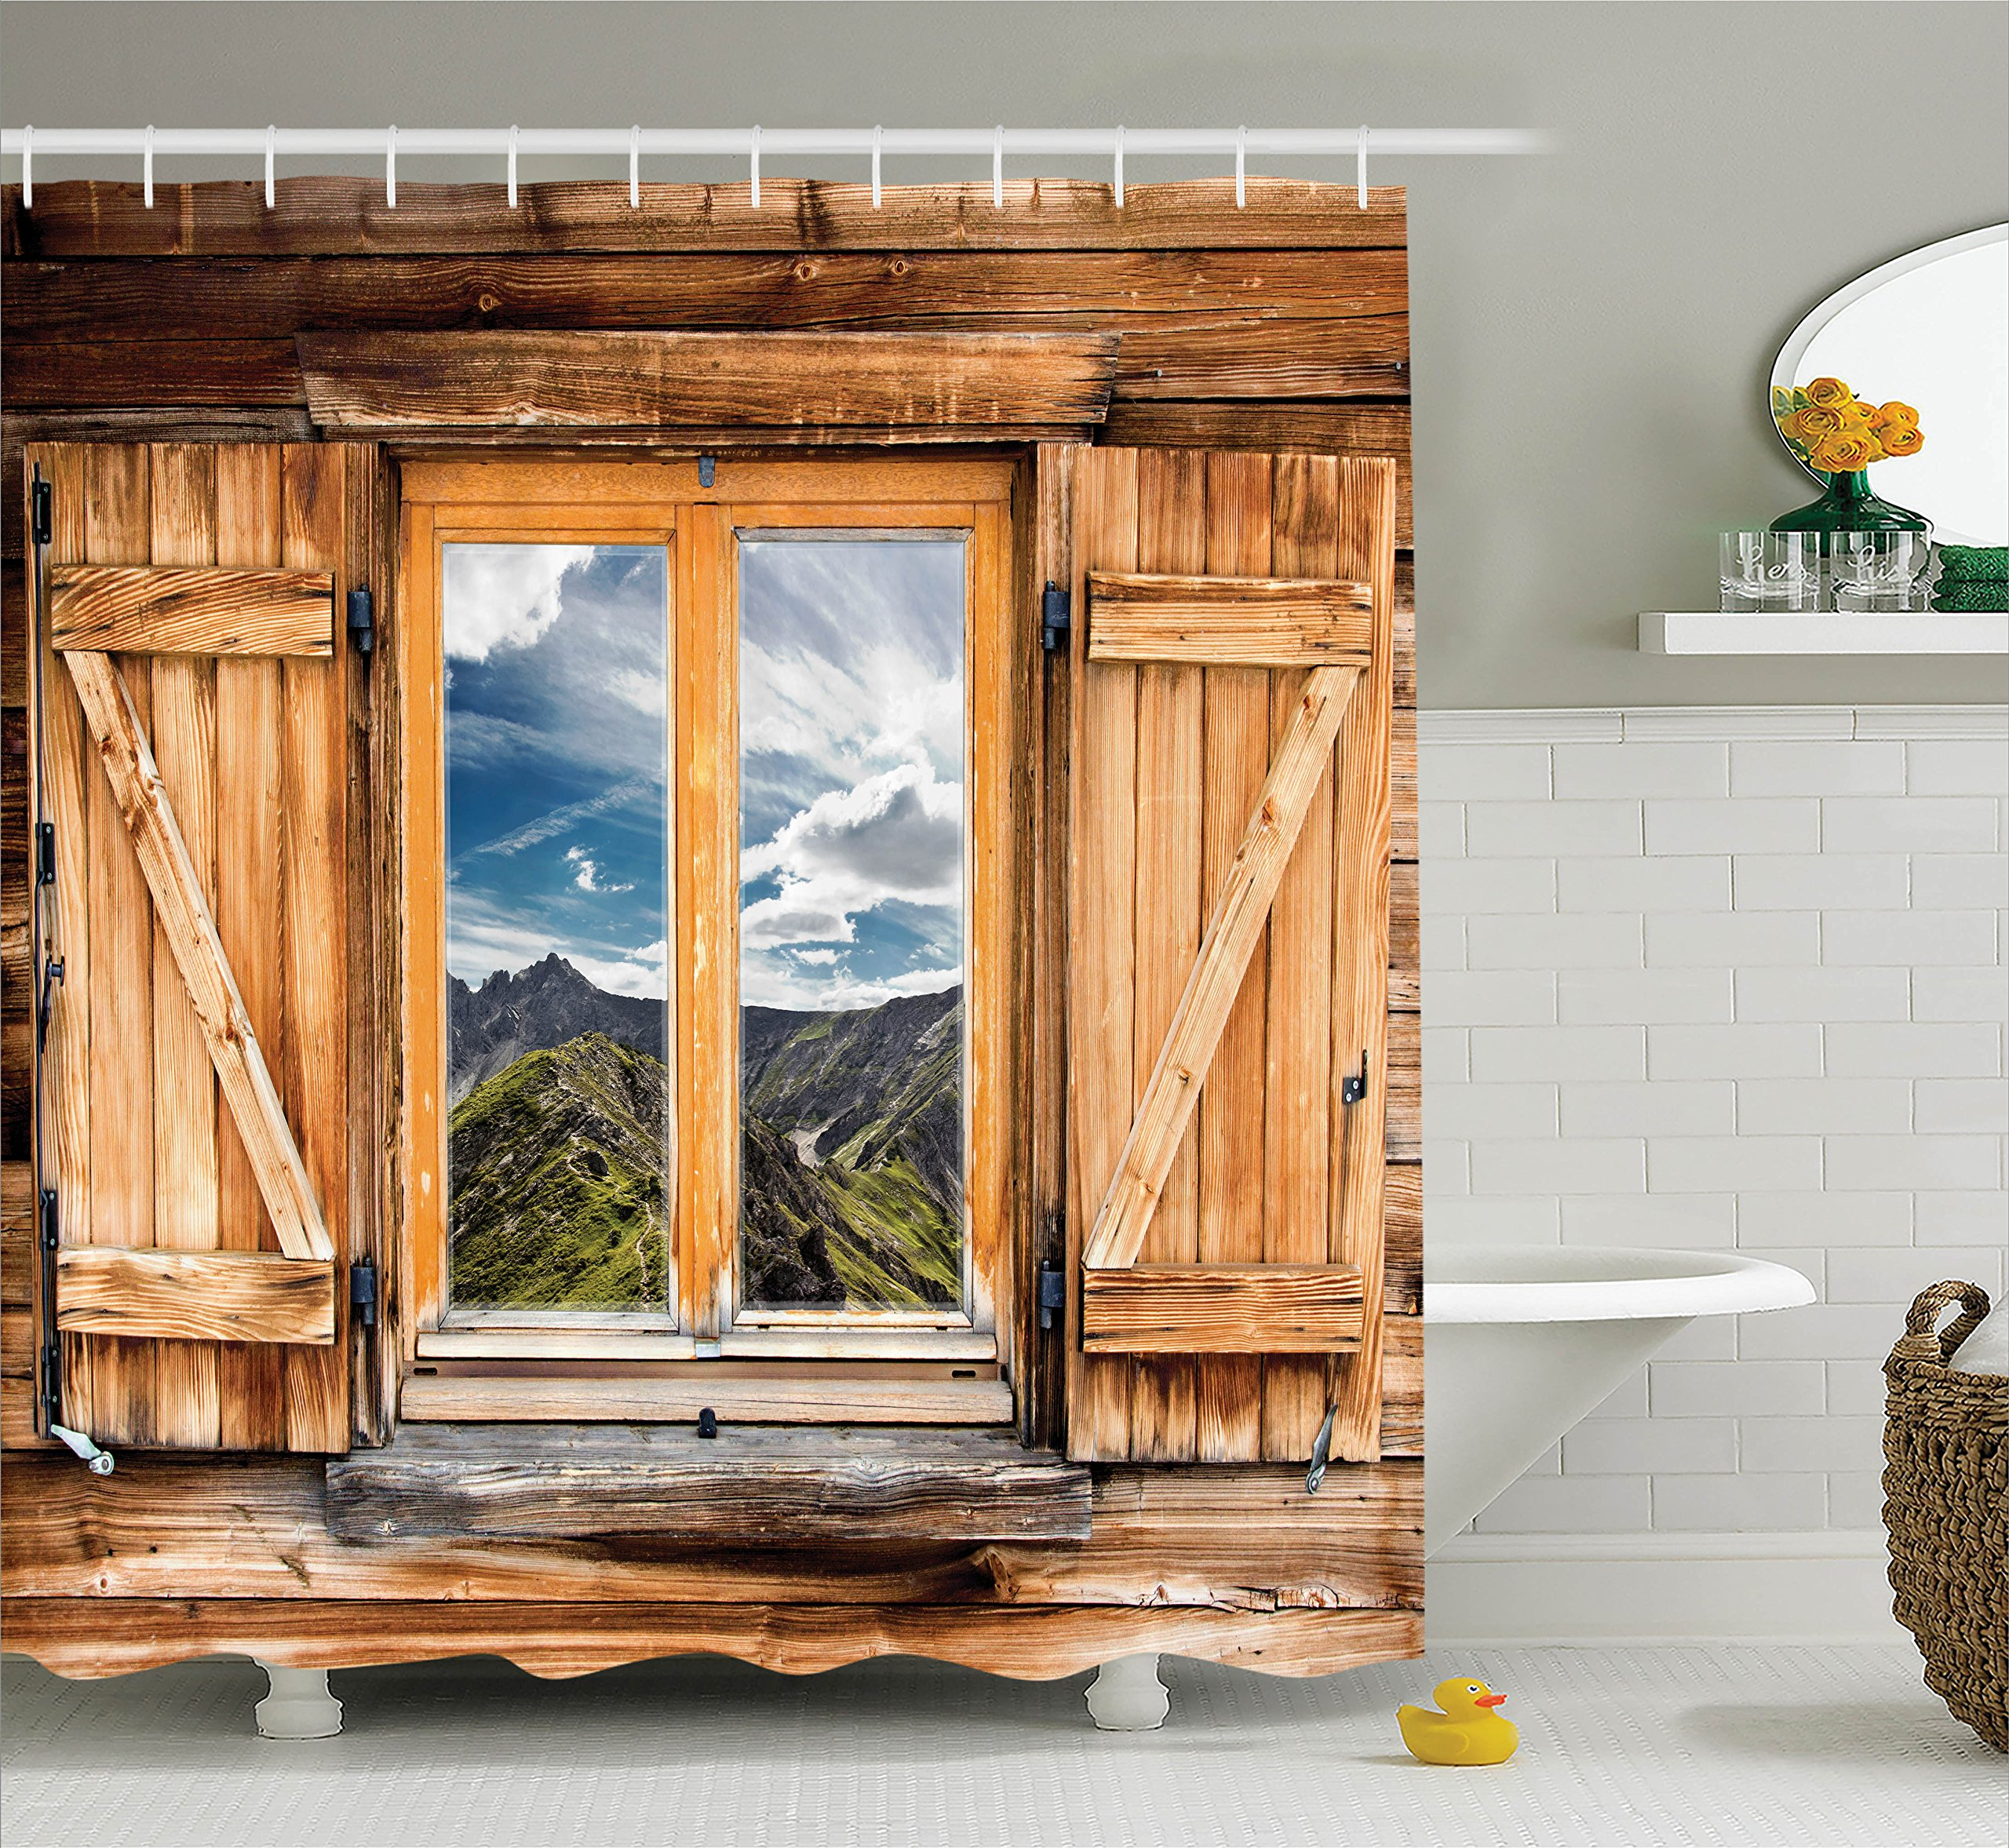 Ambesonne Country Shower Curtain Apartment Decor, Mountain and Sky View from a Wooden Shuttered Window Room on Top of The Hills Nature Look, Polyester Fabric Bathroom Set, 75 inches Long, Multi